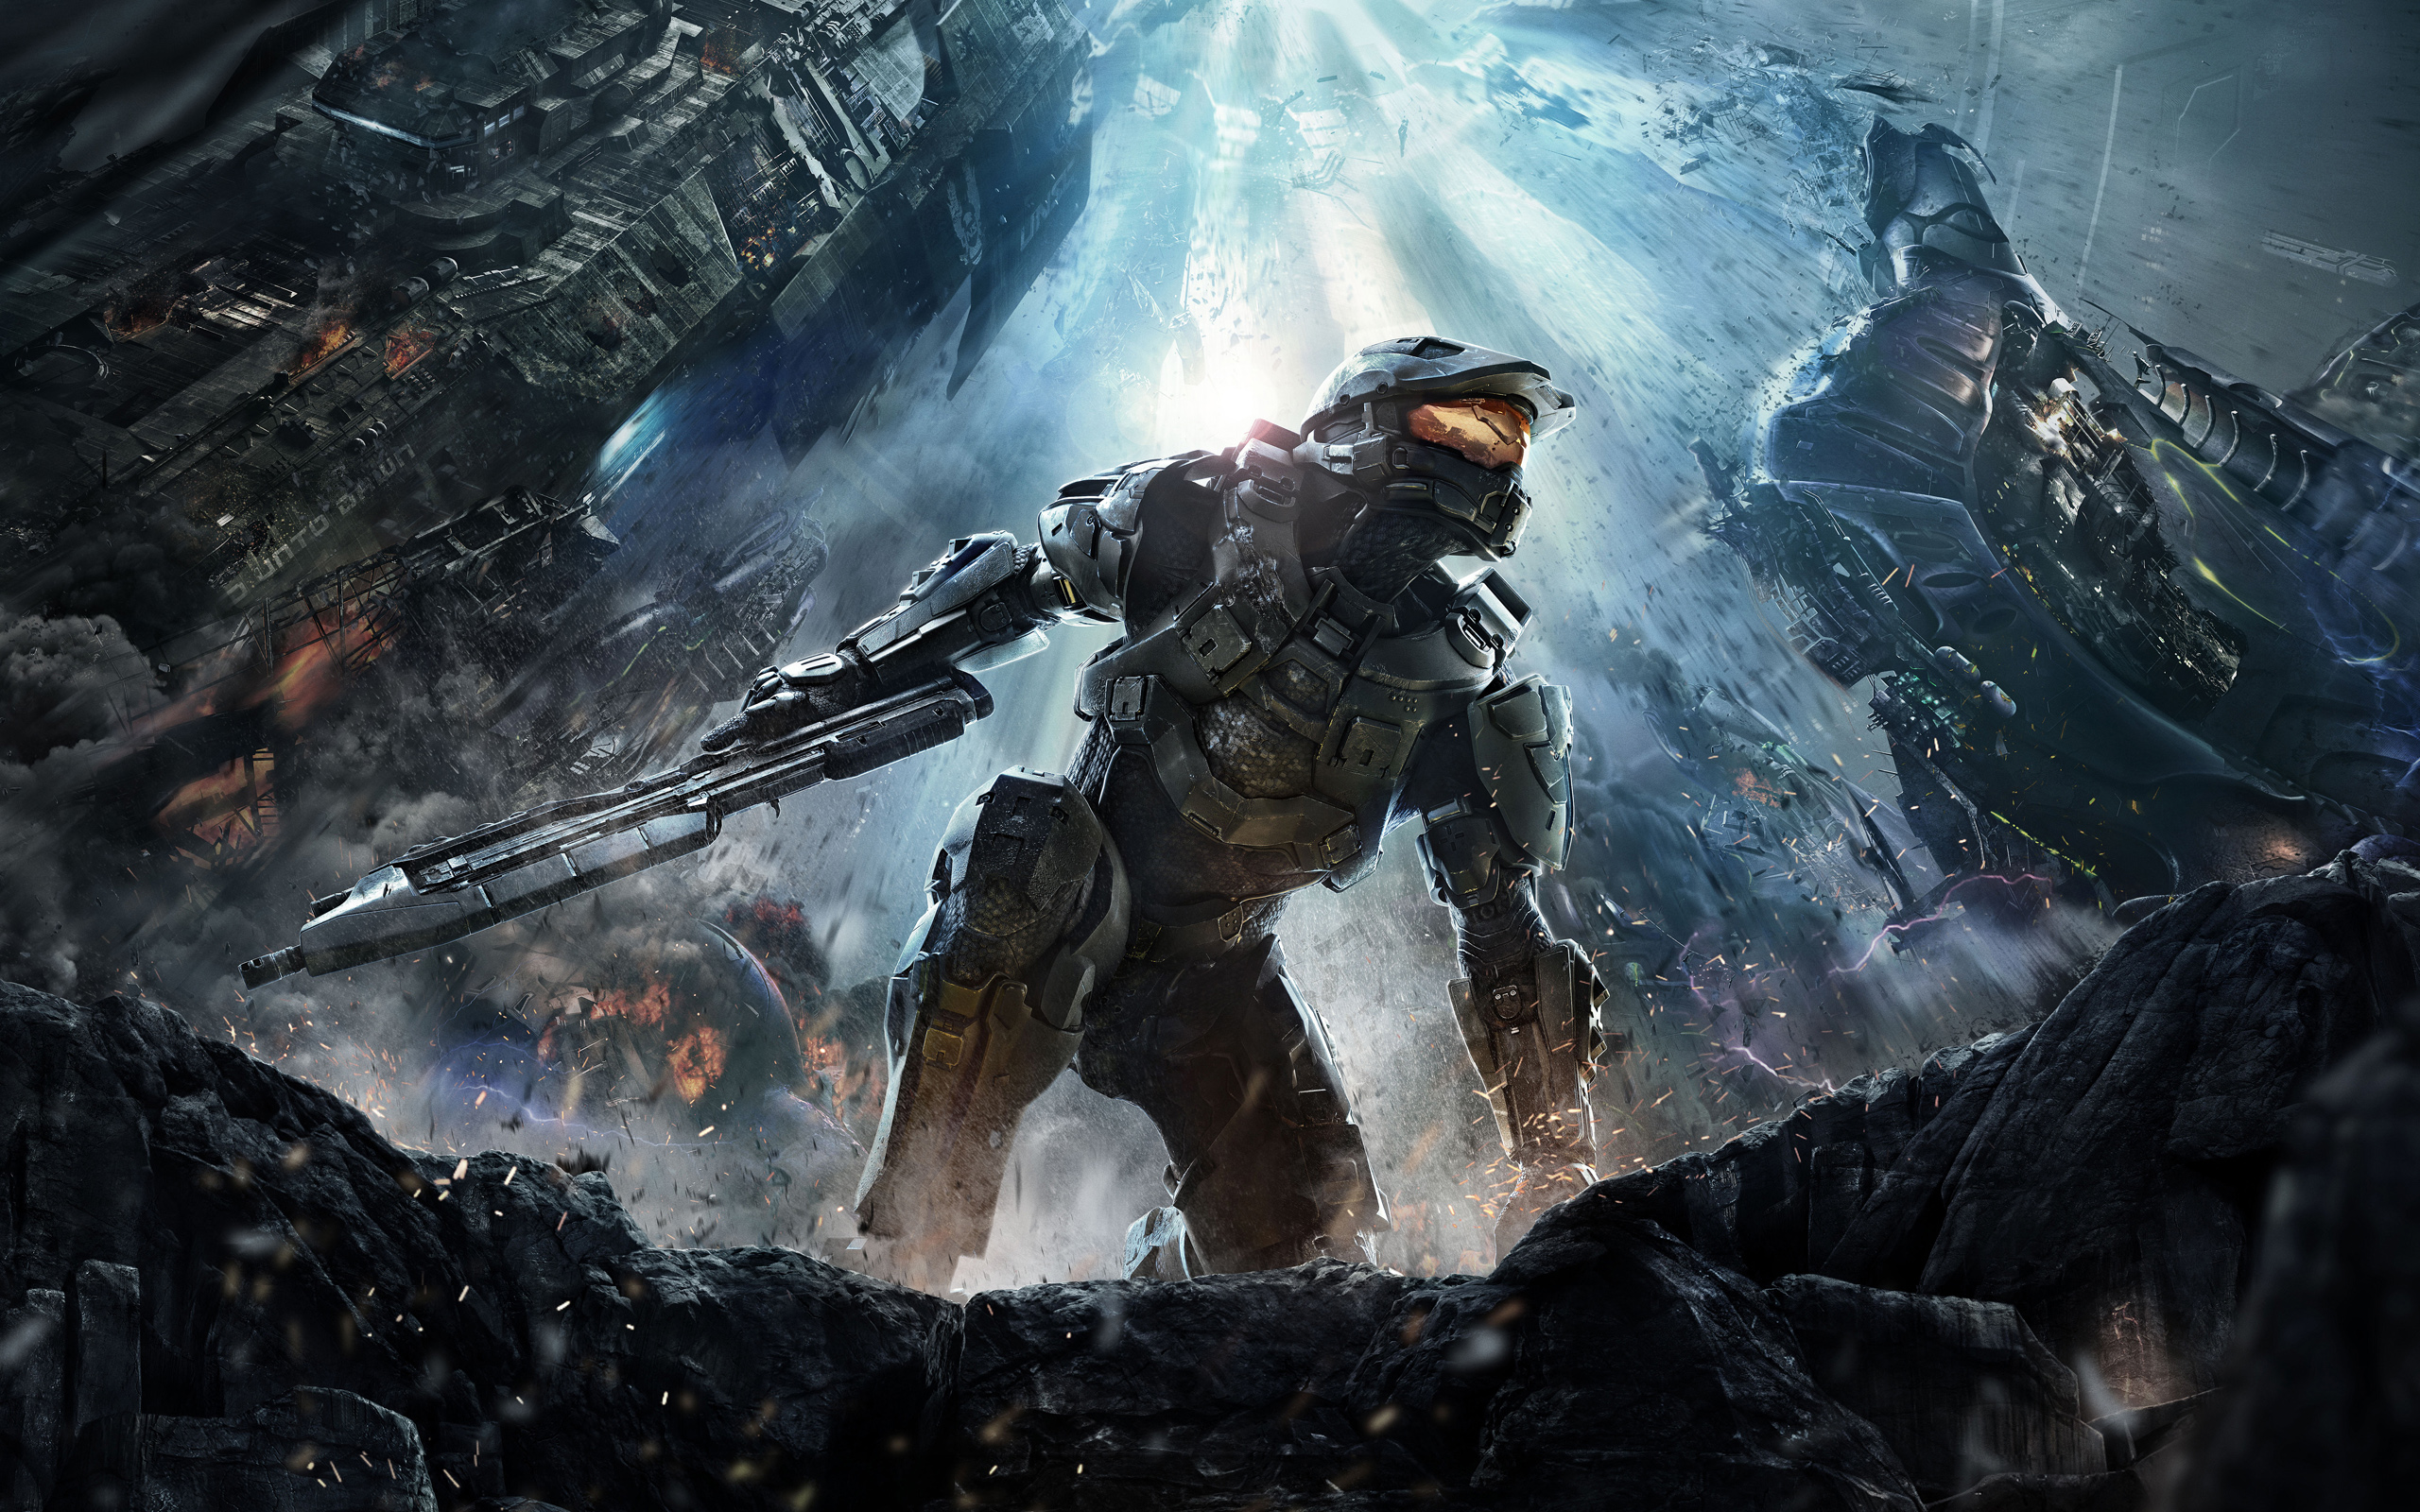 Halo 4 HD Wallpaper Background Image 2560x1600 ID269406 2560x1600